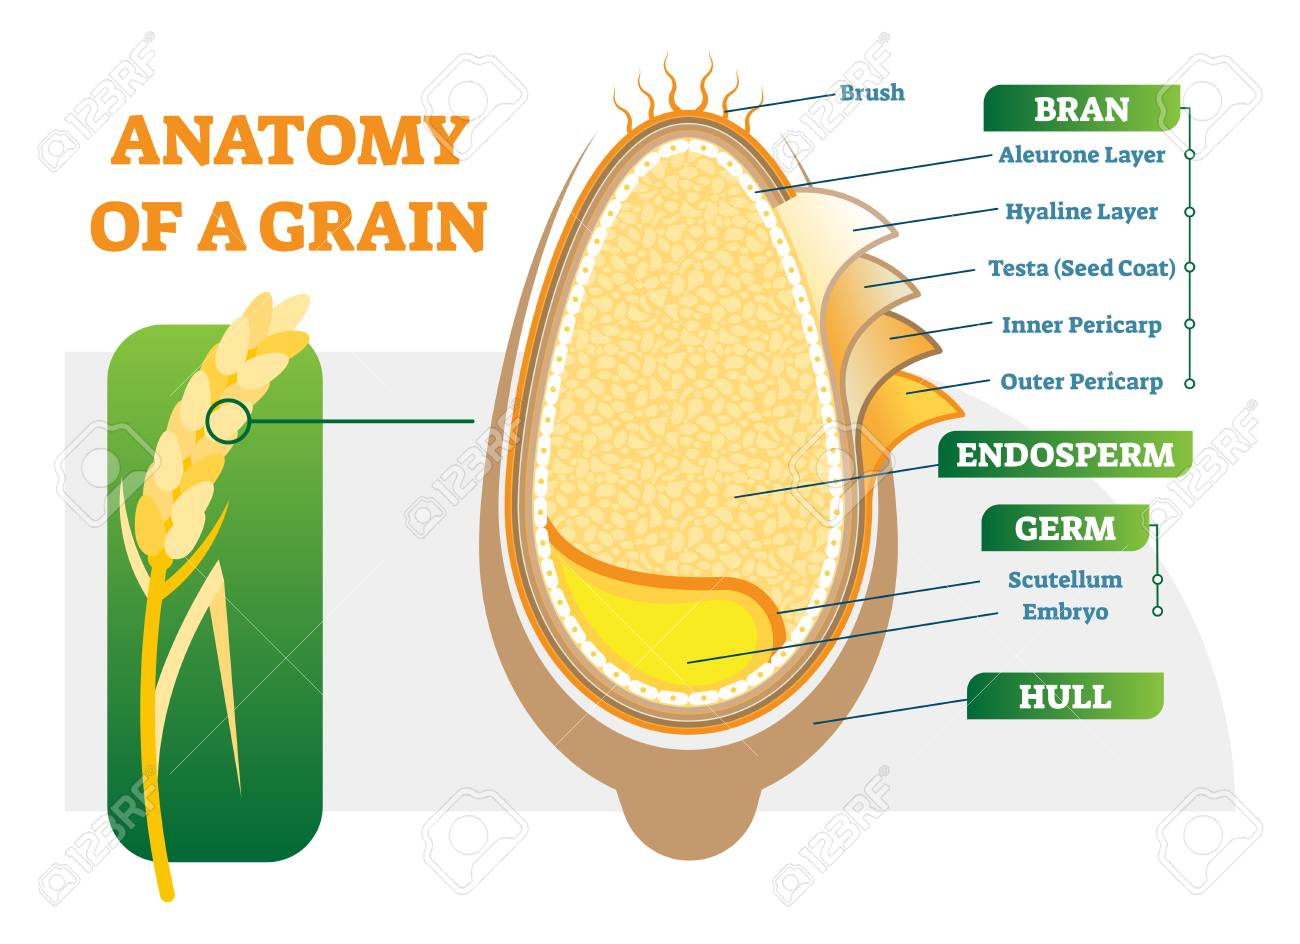 hight resolution of grain anatomical layers vector illustration diagram with bran endosperm germ and hull biology